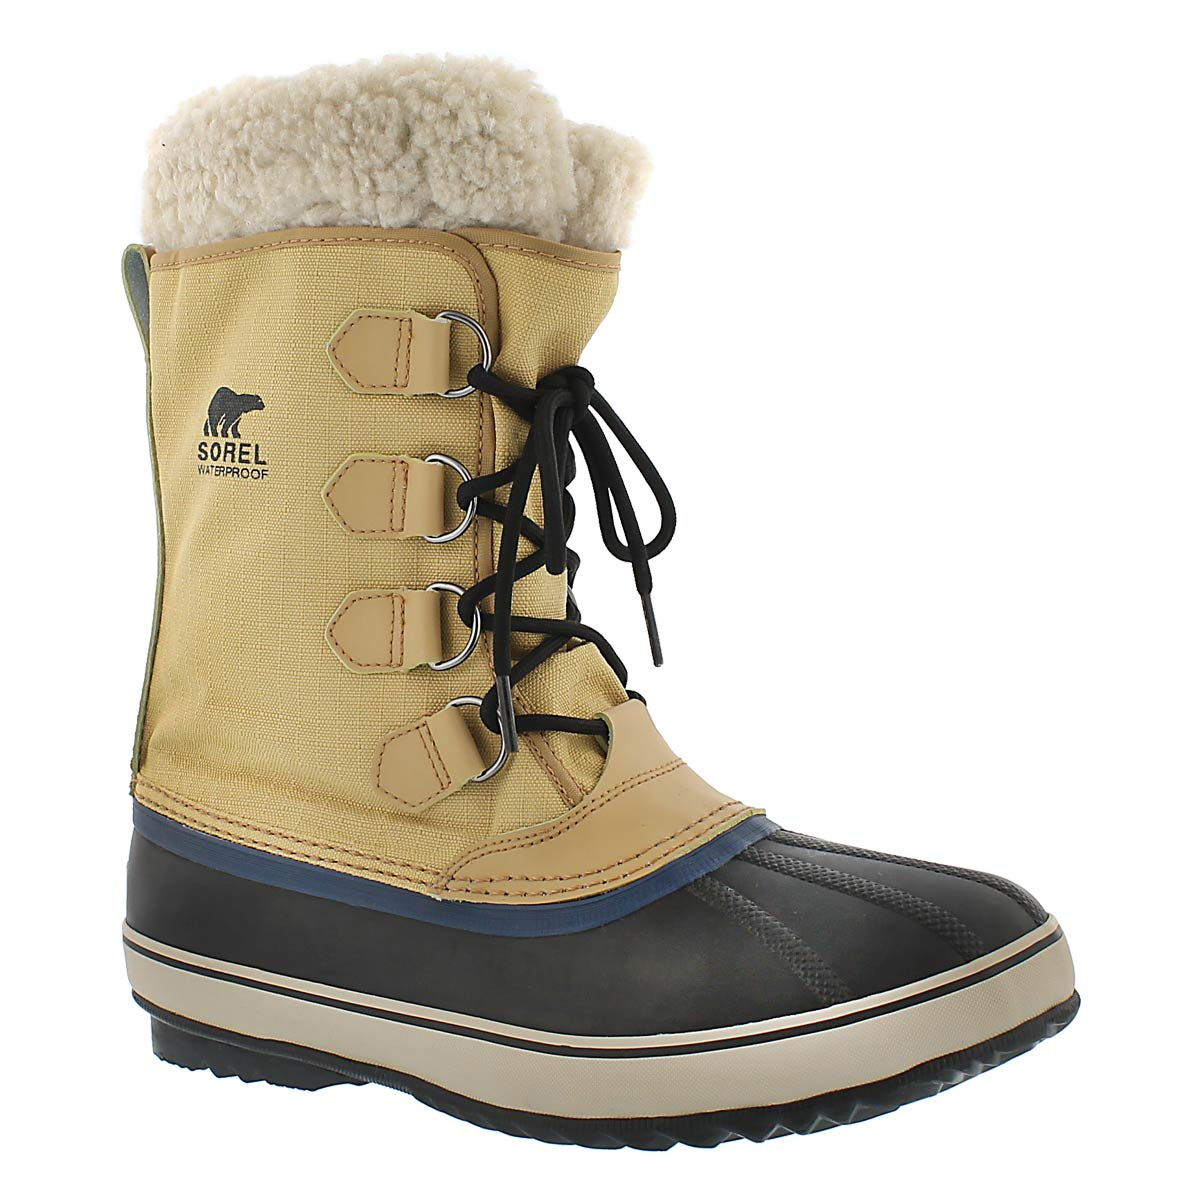 Men's 1964 PAC NYLON curry winter boots